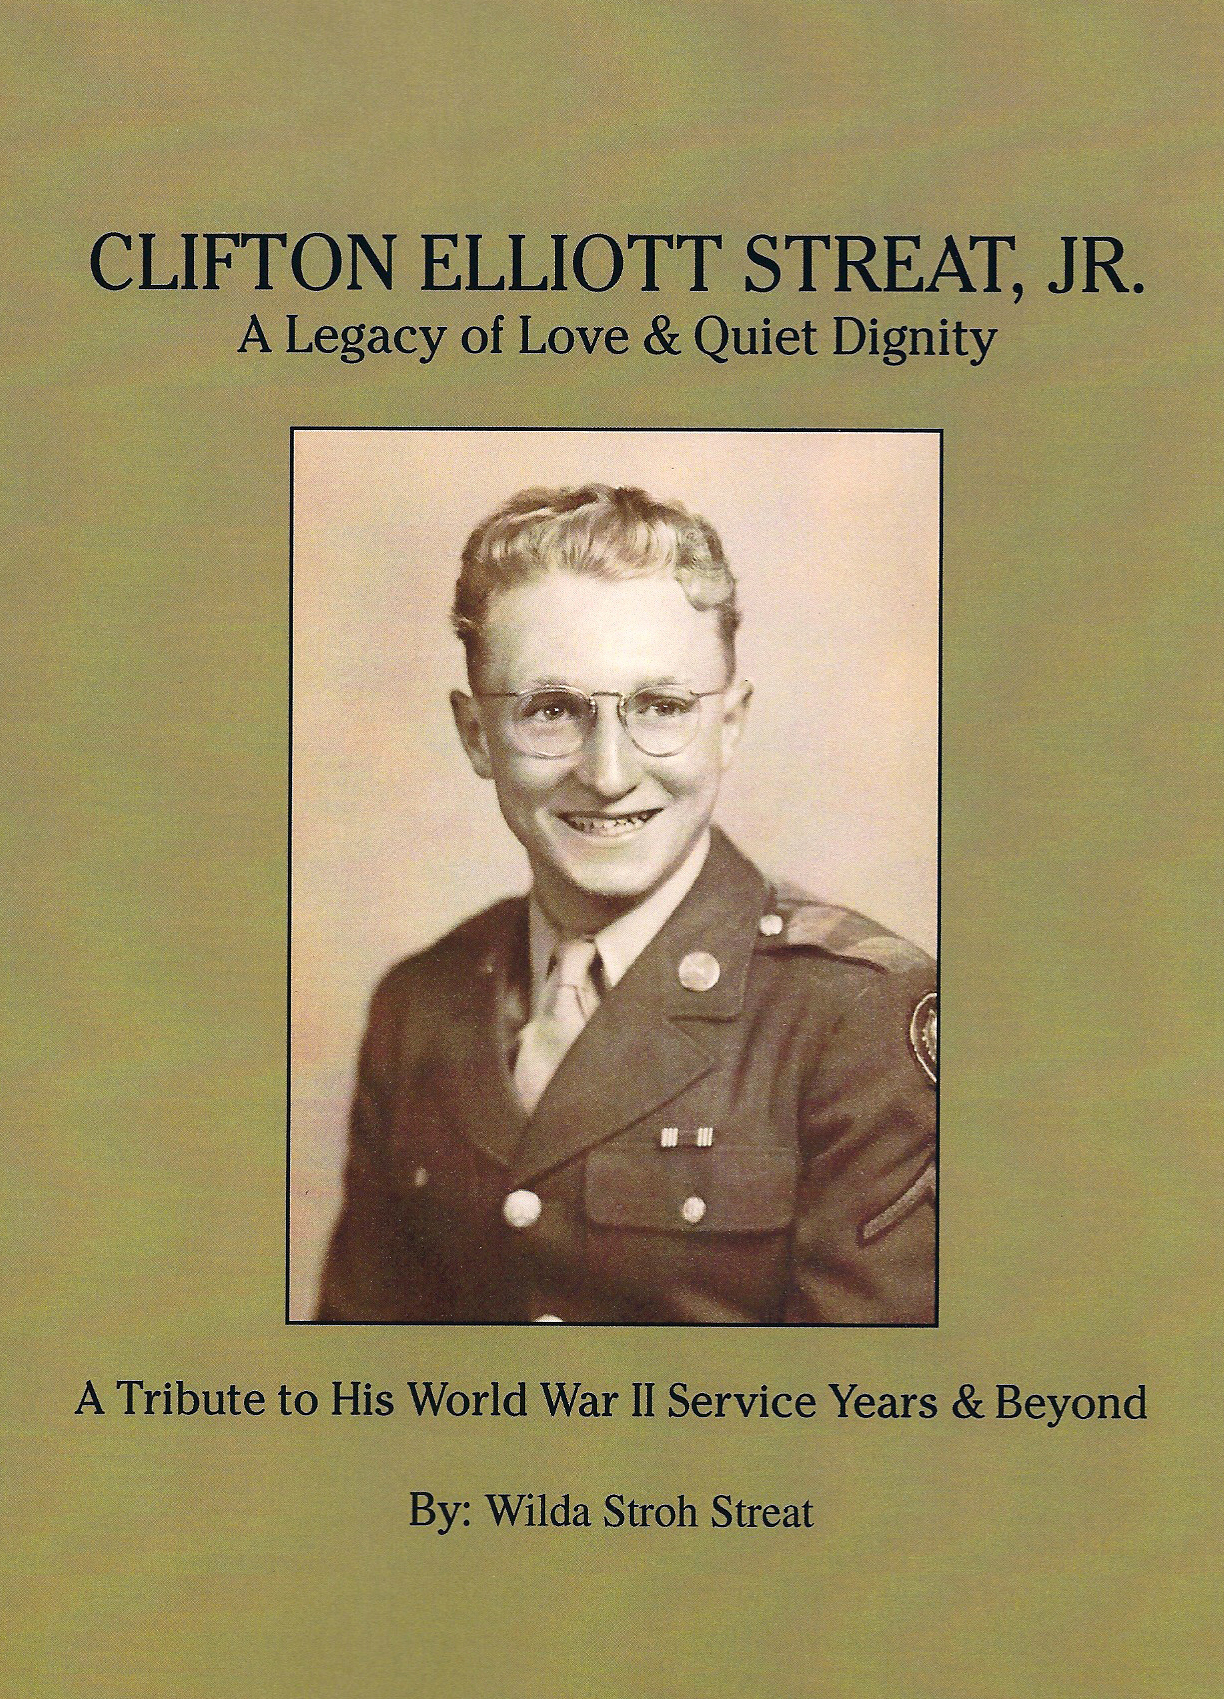 Clif_Streat_Book_Cover_cropped.jpg